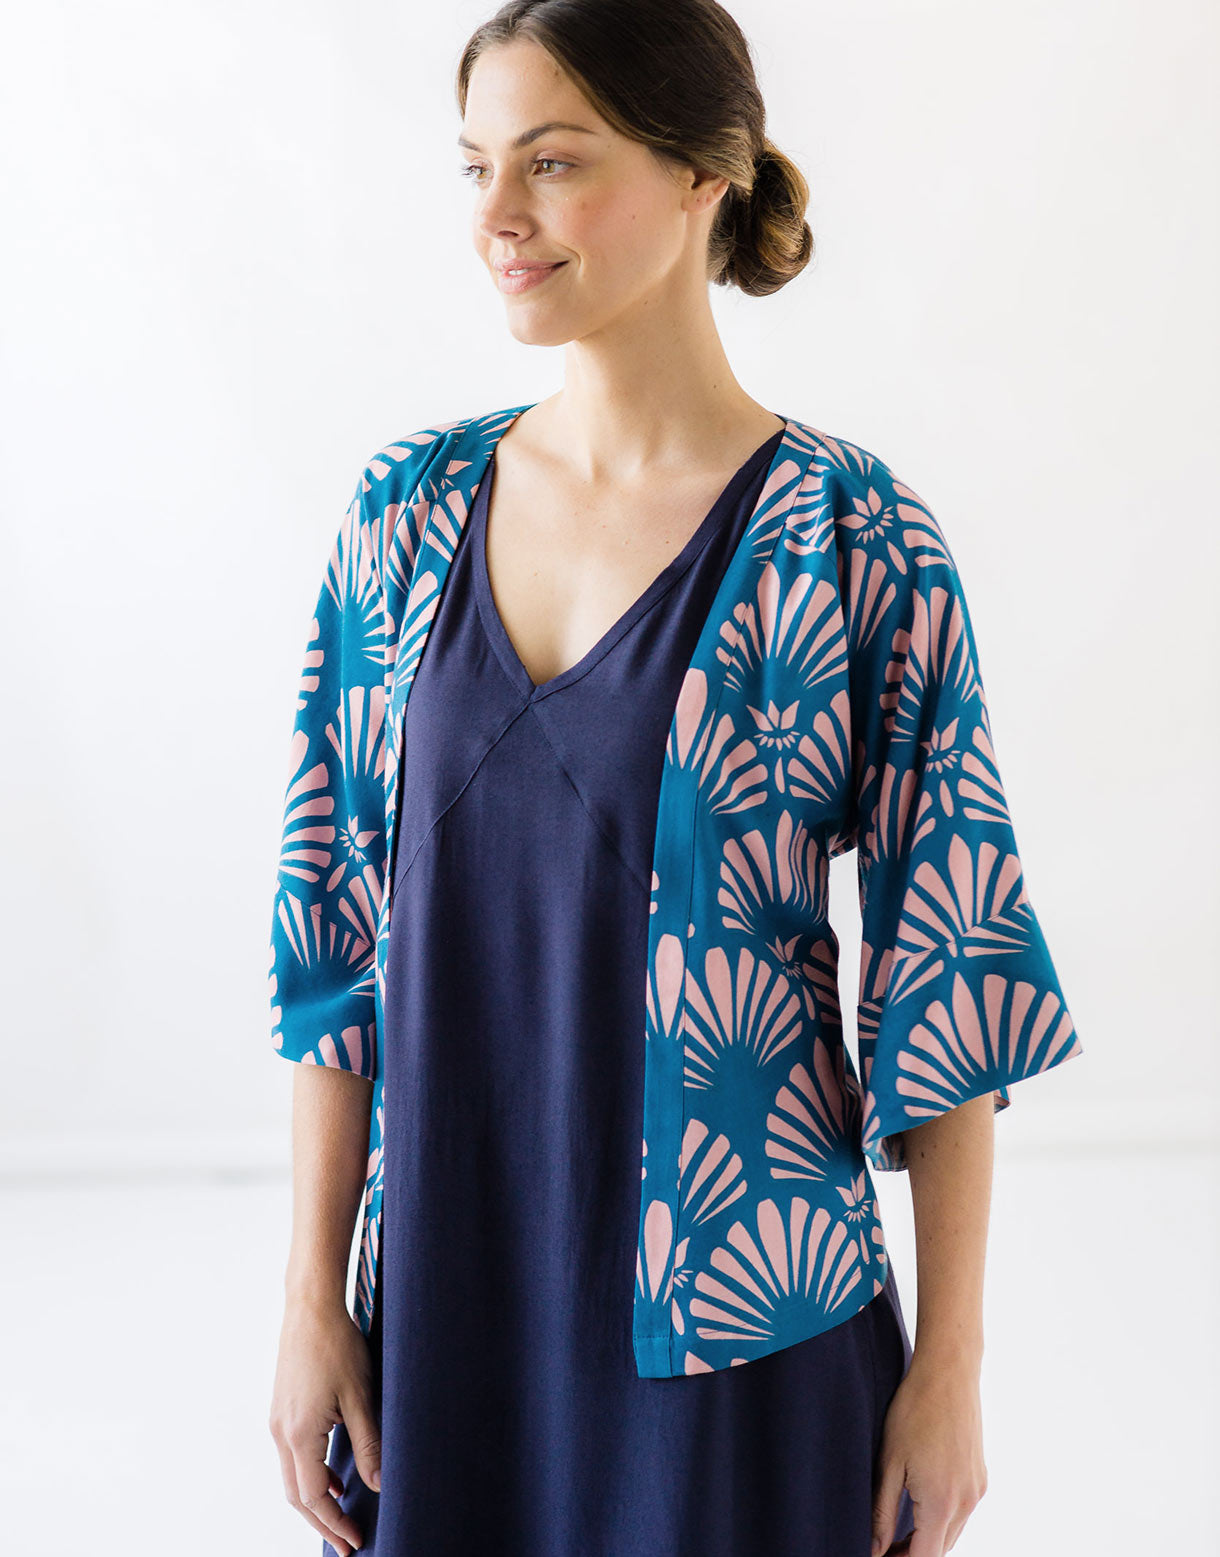 Aria jacket in Fantail *sustainable viscose